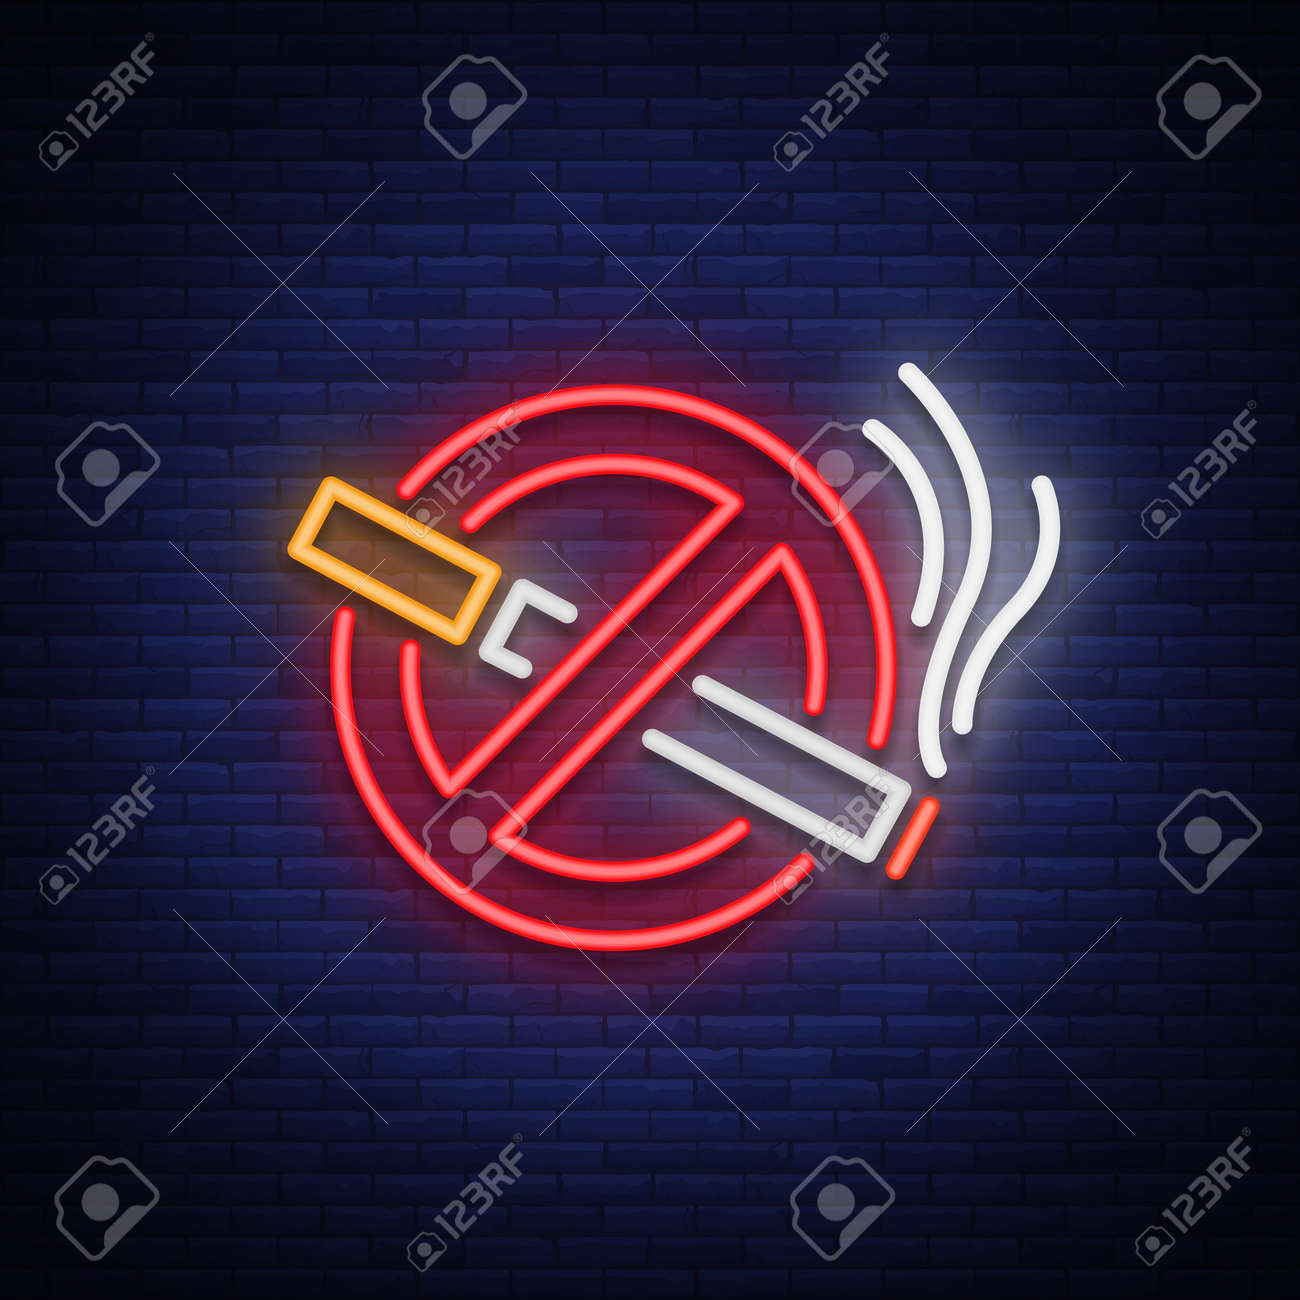 No smoking vector neon sign. Bright symbol, icon, luminous warning sign of smoking in an unauthorized place. - 91550522